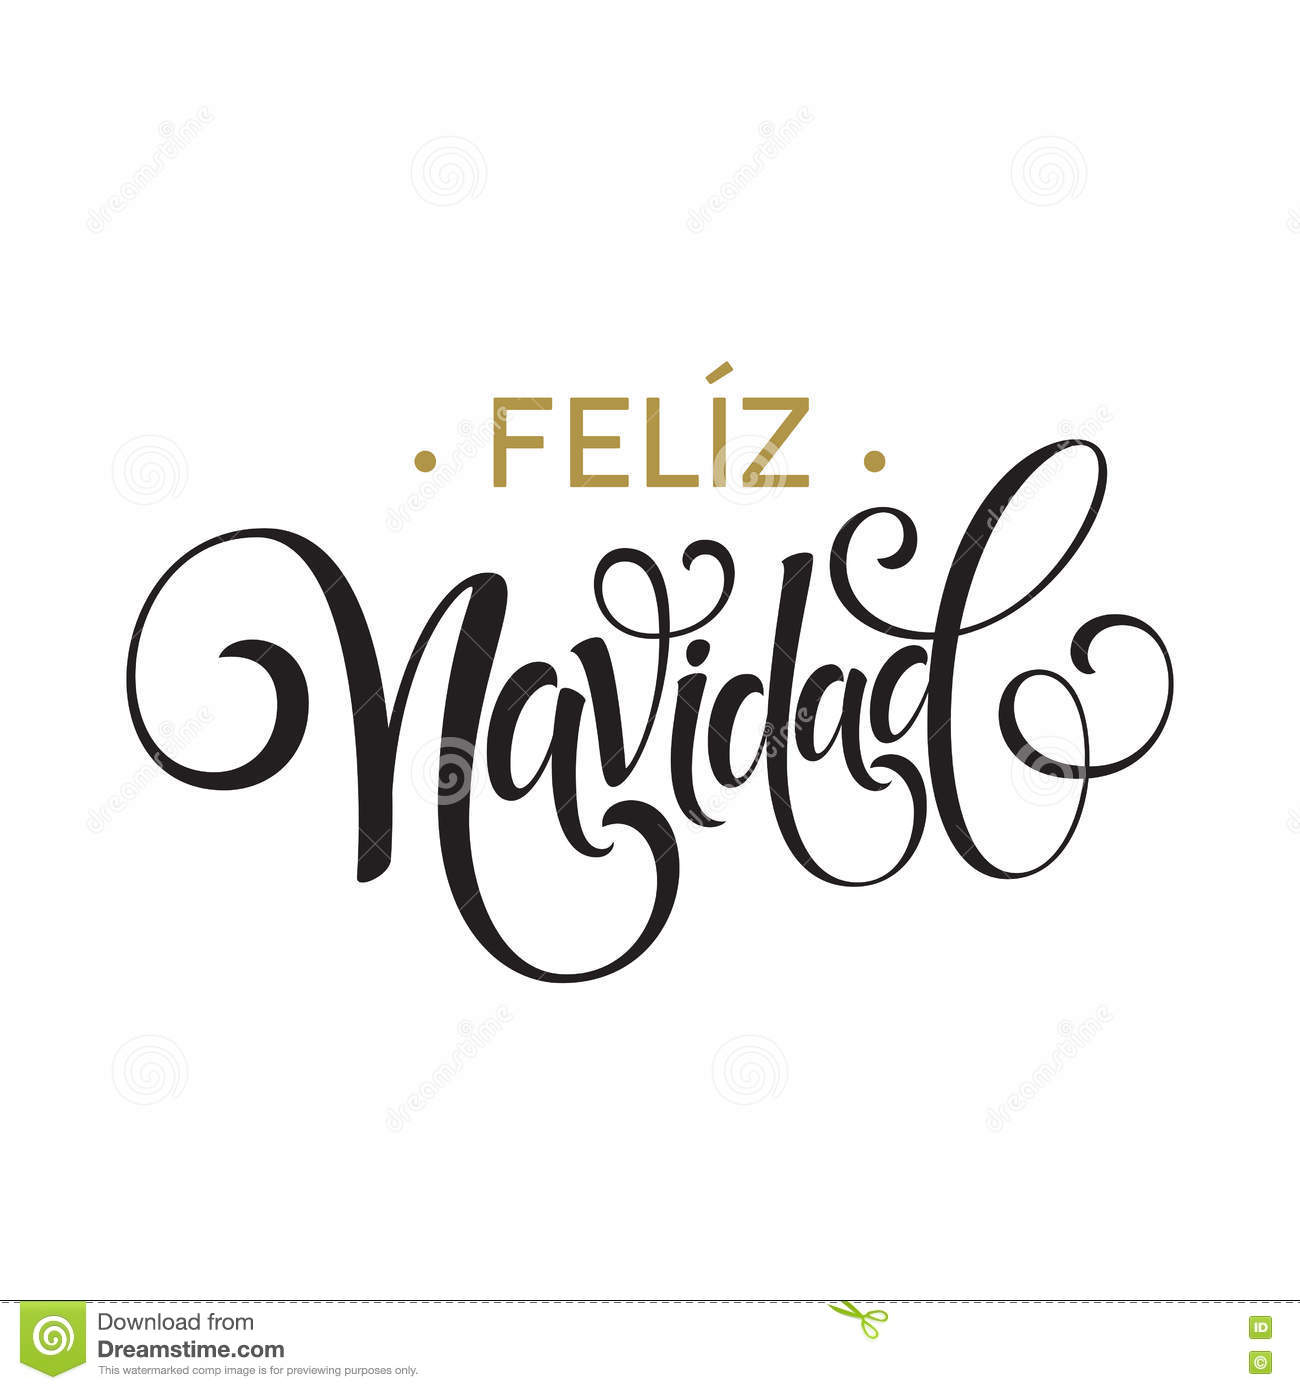 feliz navidad hand lettering decoration text for greeting card design template merry christmas